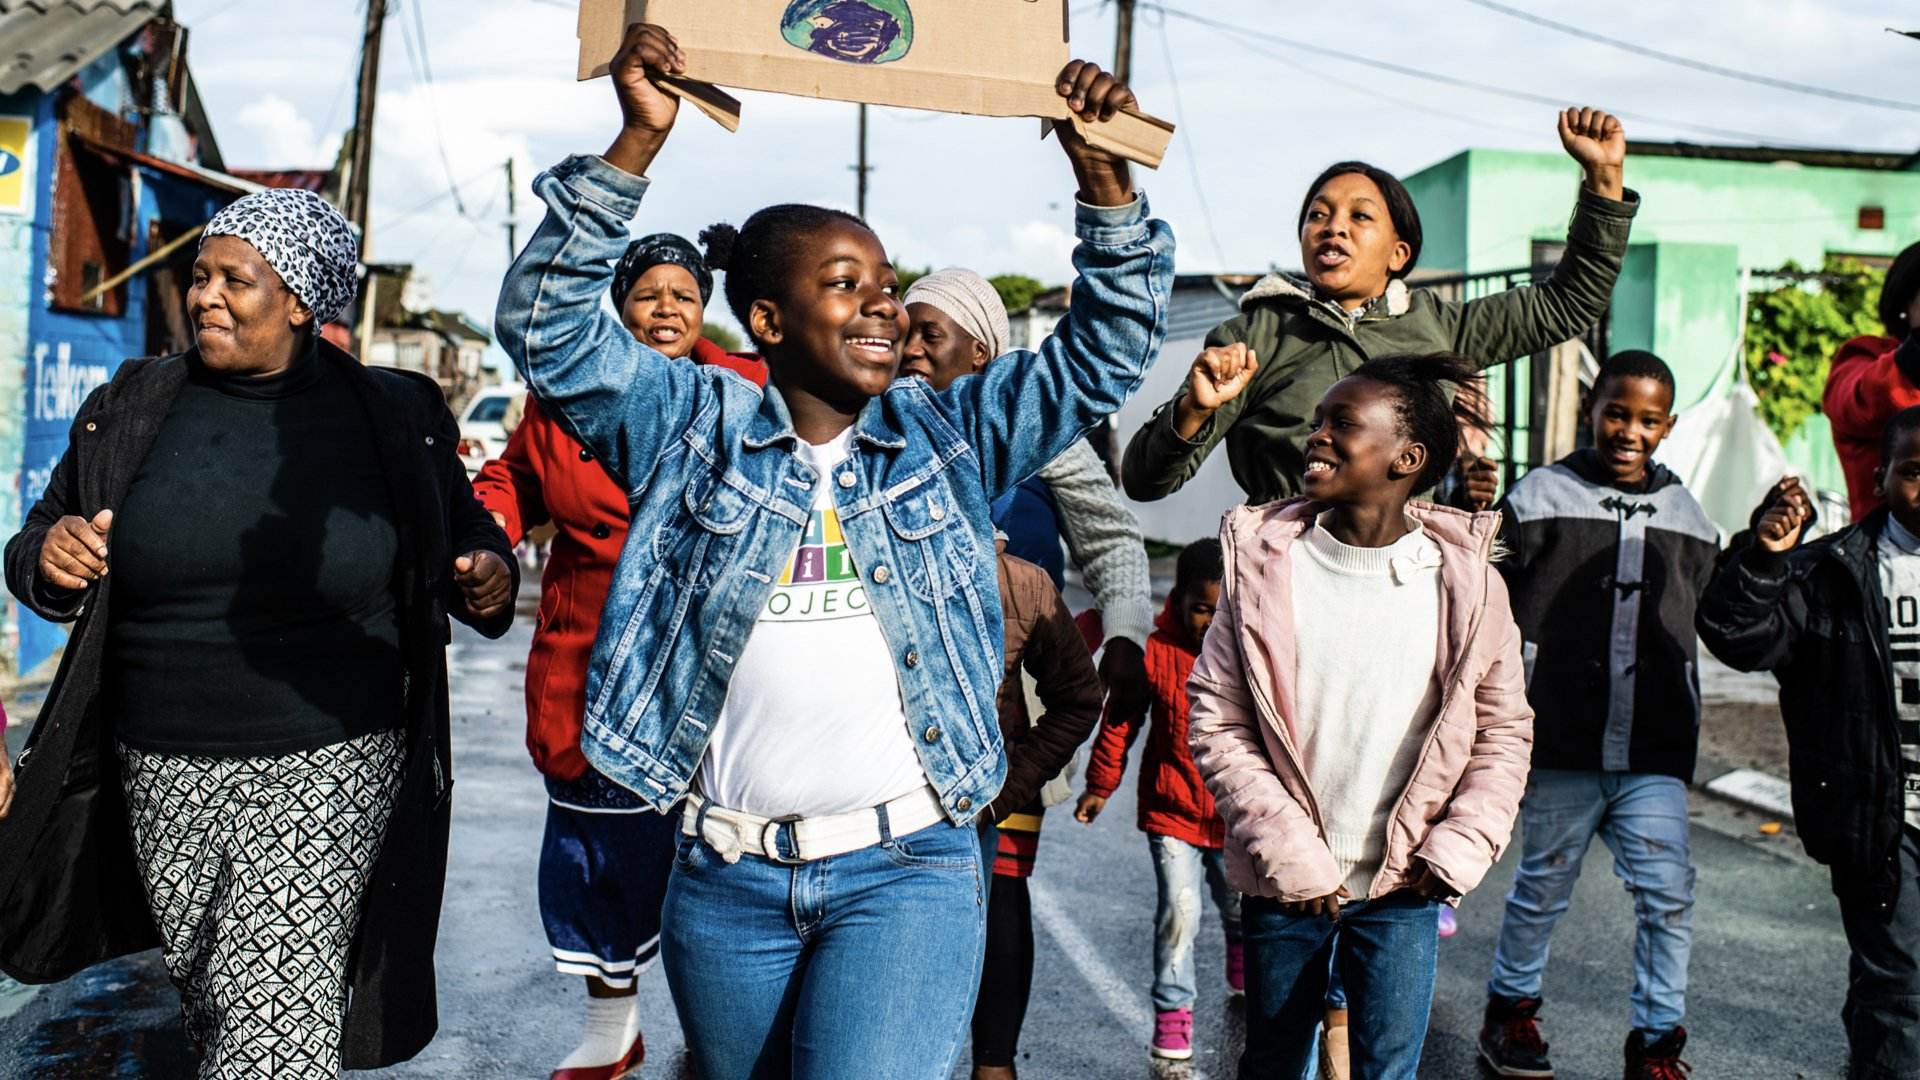 In a Sea of Denial, This 11-Year-Old South African Activist Is Speaking Out Against Climate Injustice